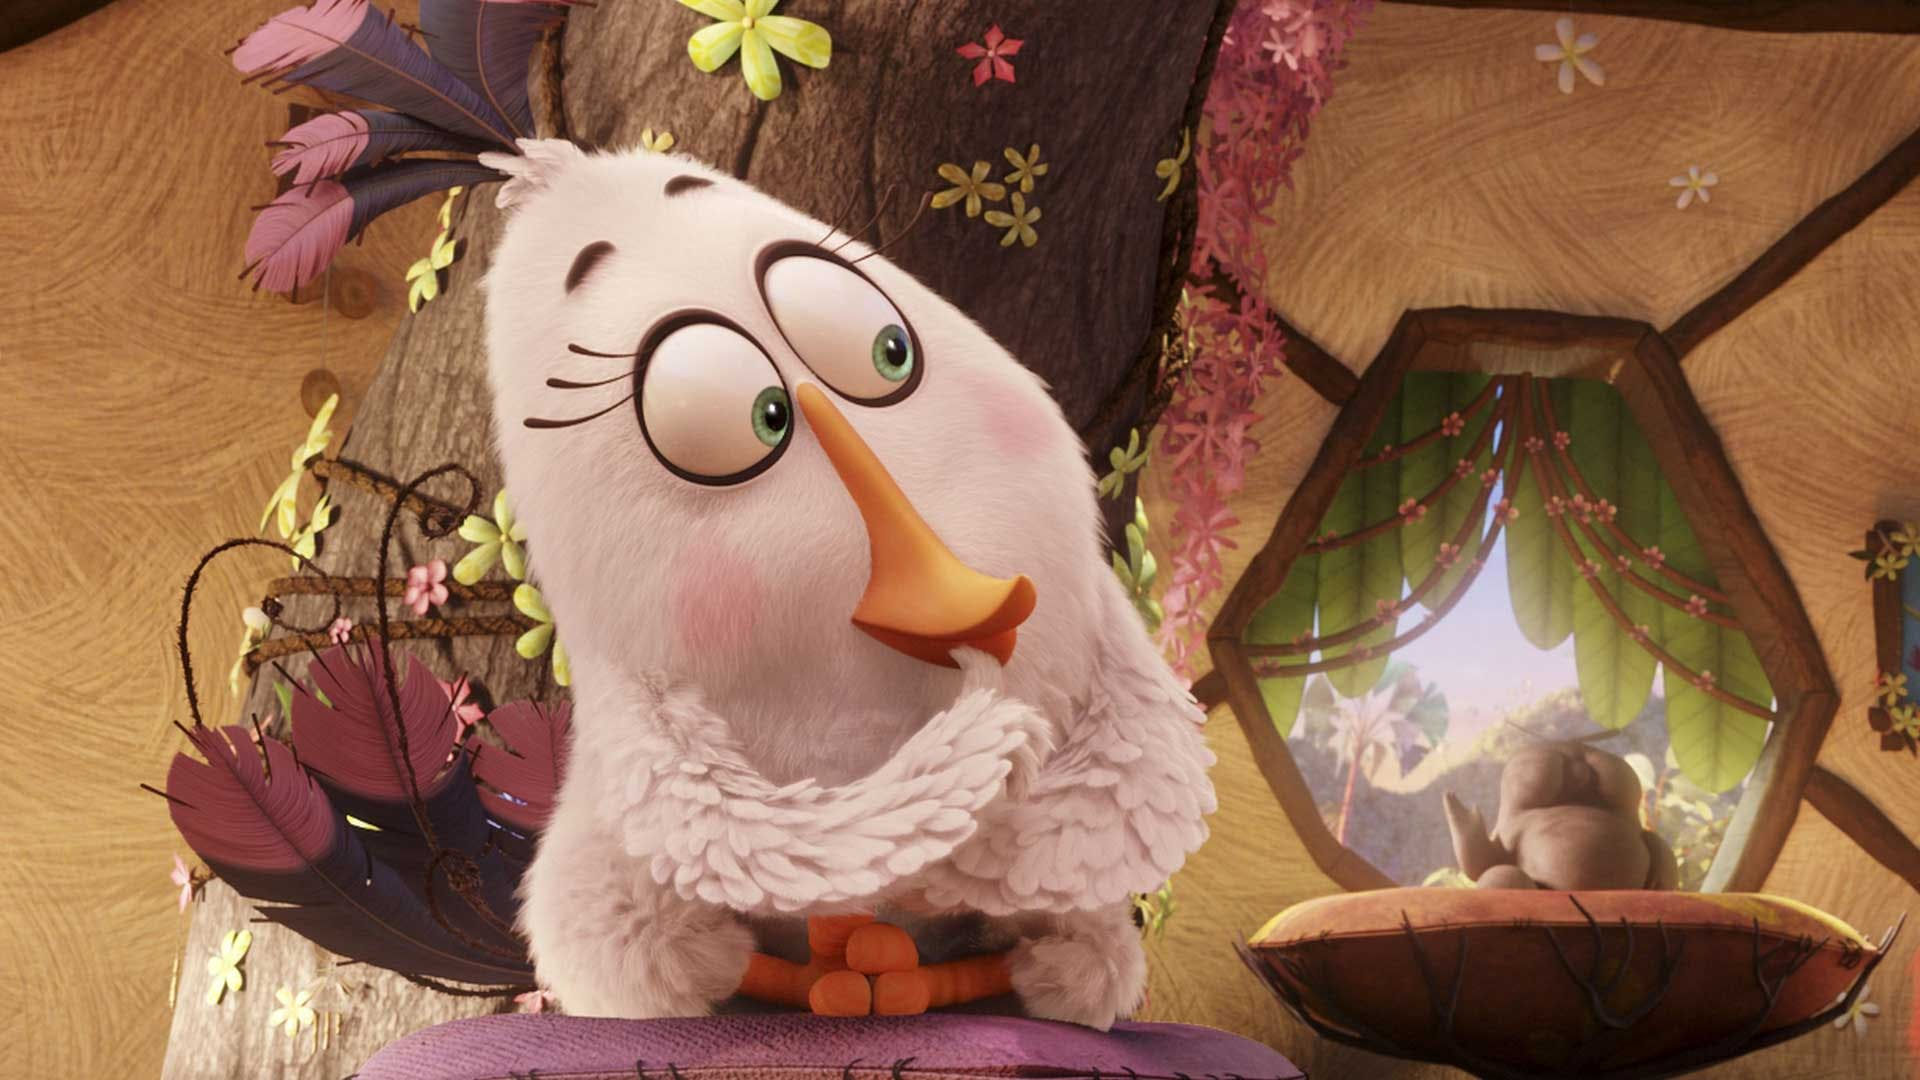 Matilda from Angry Birds